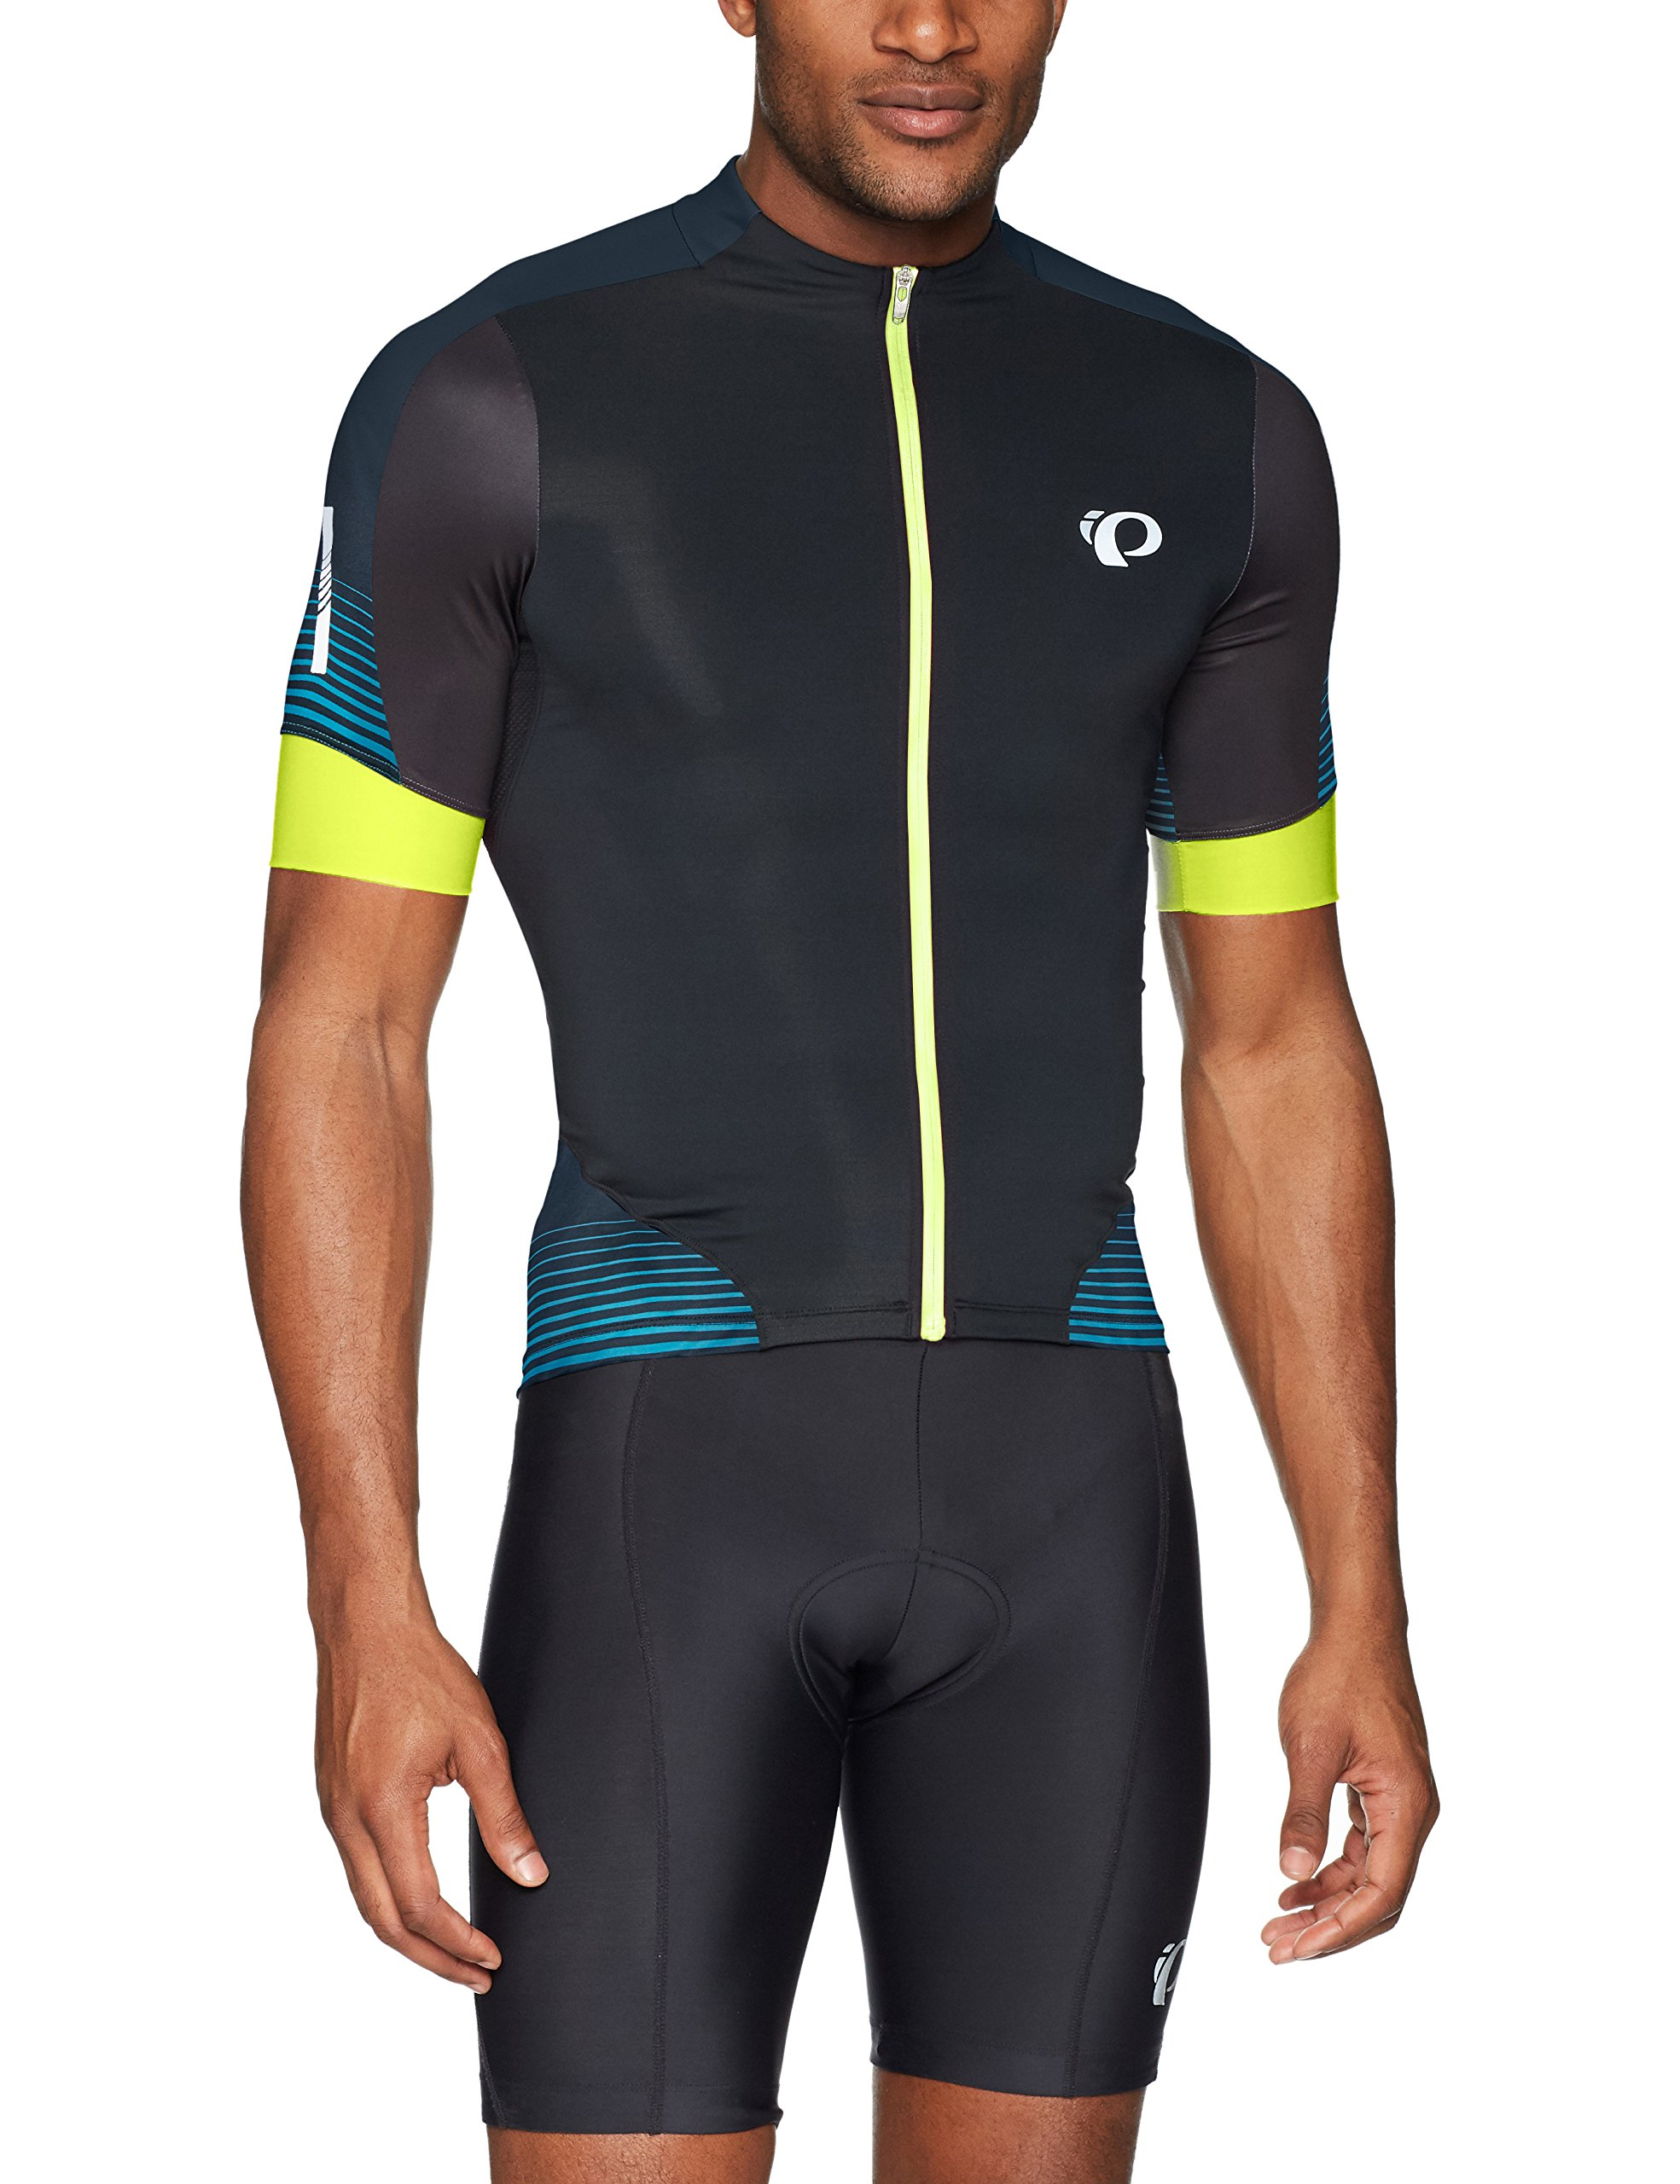 Pearl iZUMi Pro Pursuit Leader Jersey, Atomic Blue Diffuse, X-Small